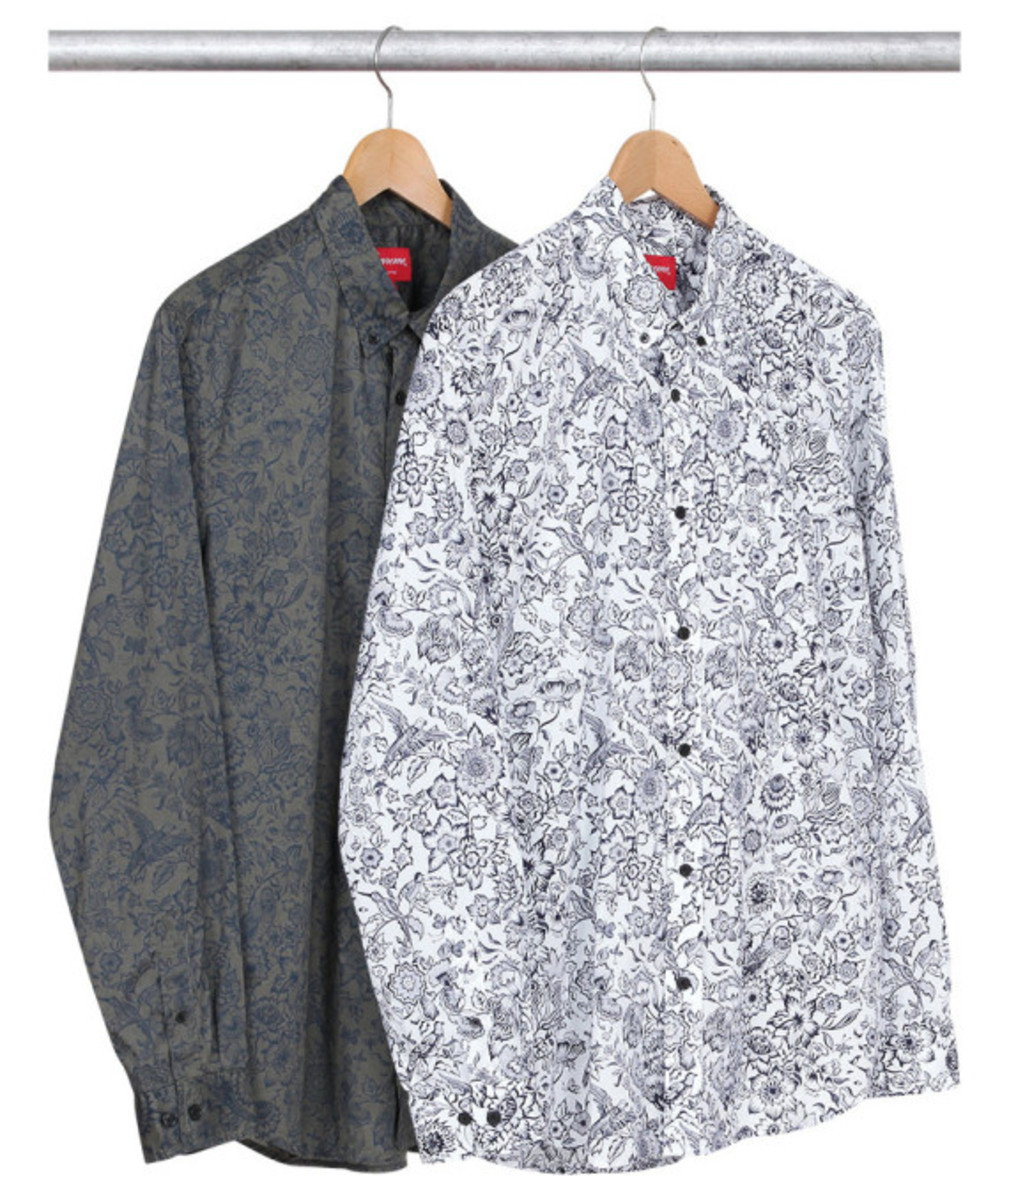 supreme-liberty-spring-summer-2014-collaboration-collection-03